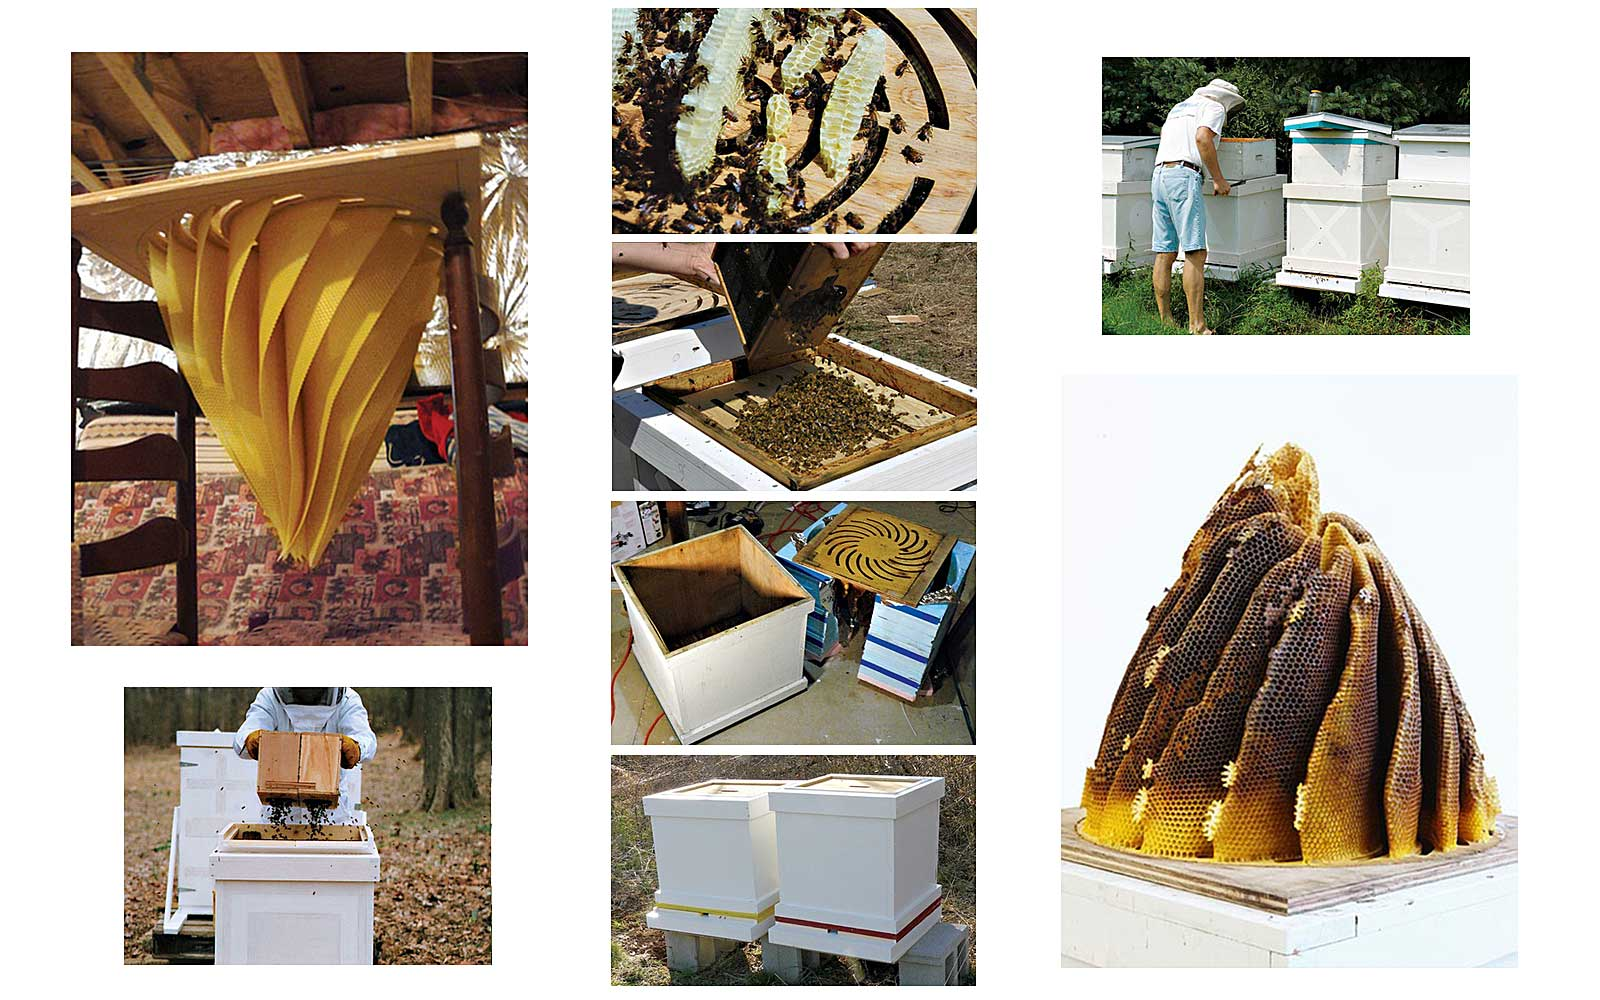 images of Hilary Berseth making sculptural beehives